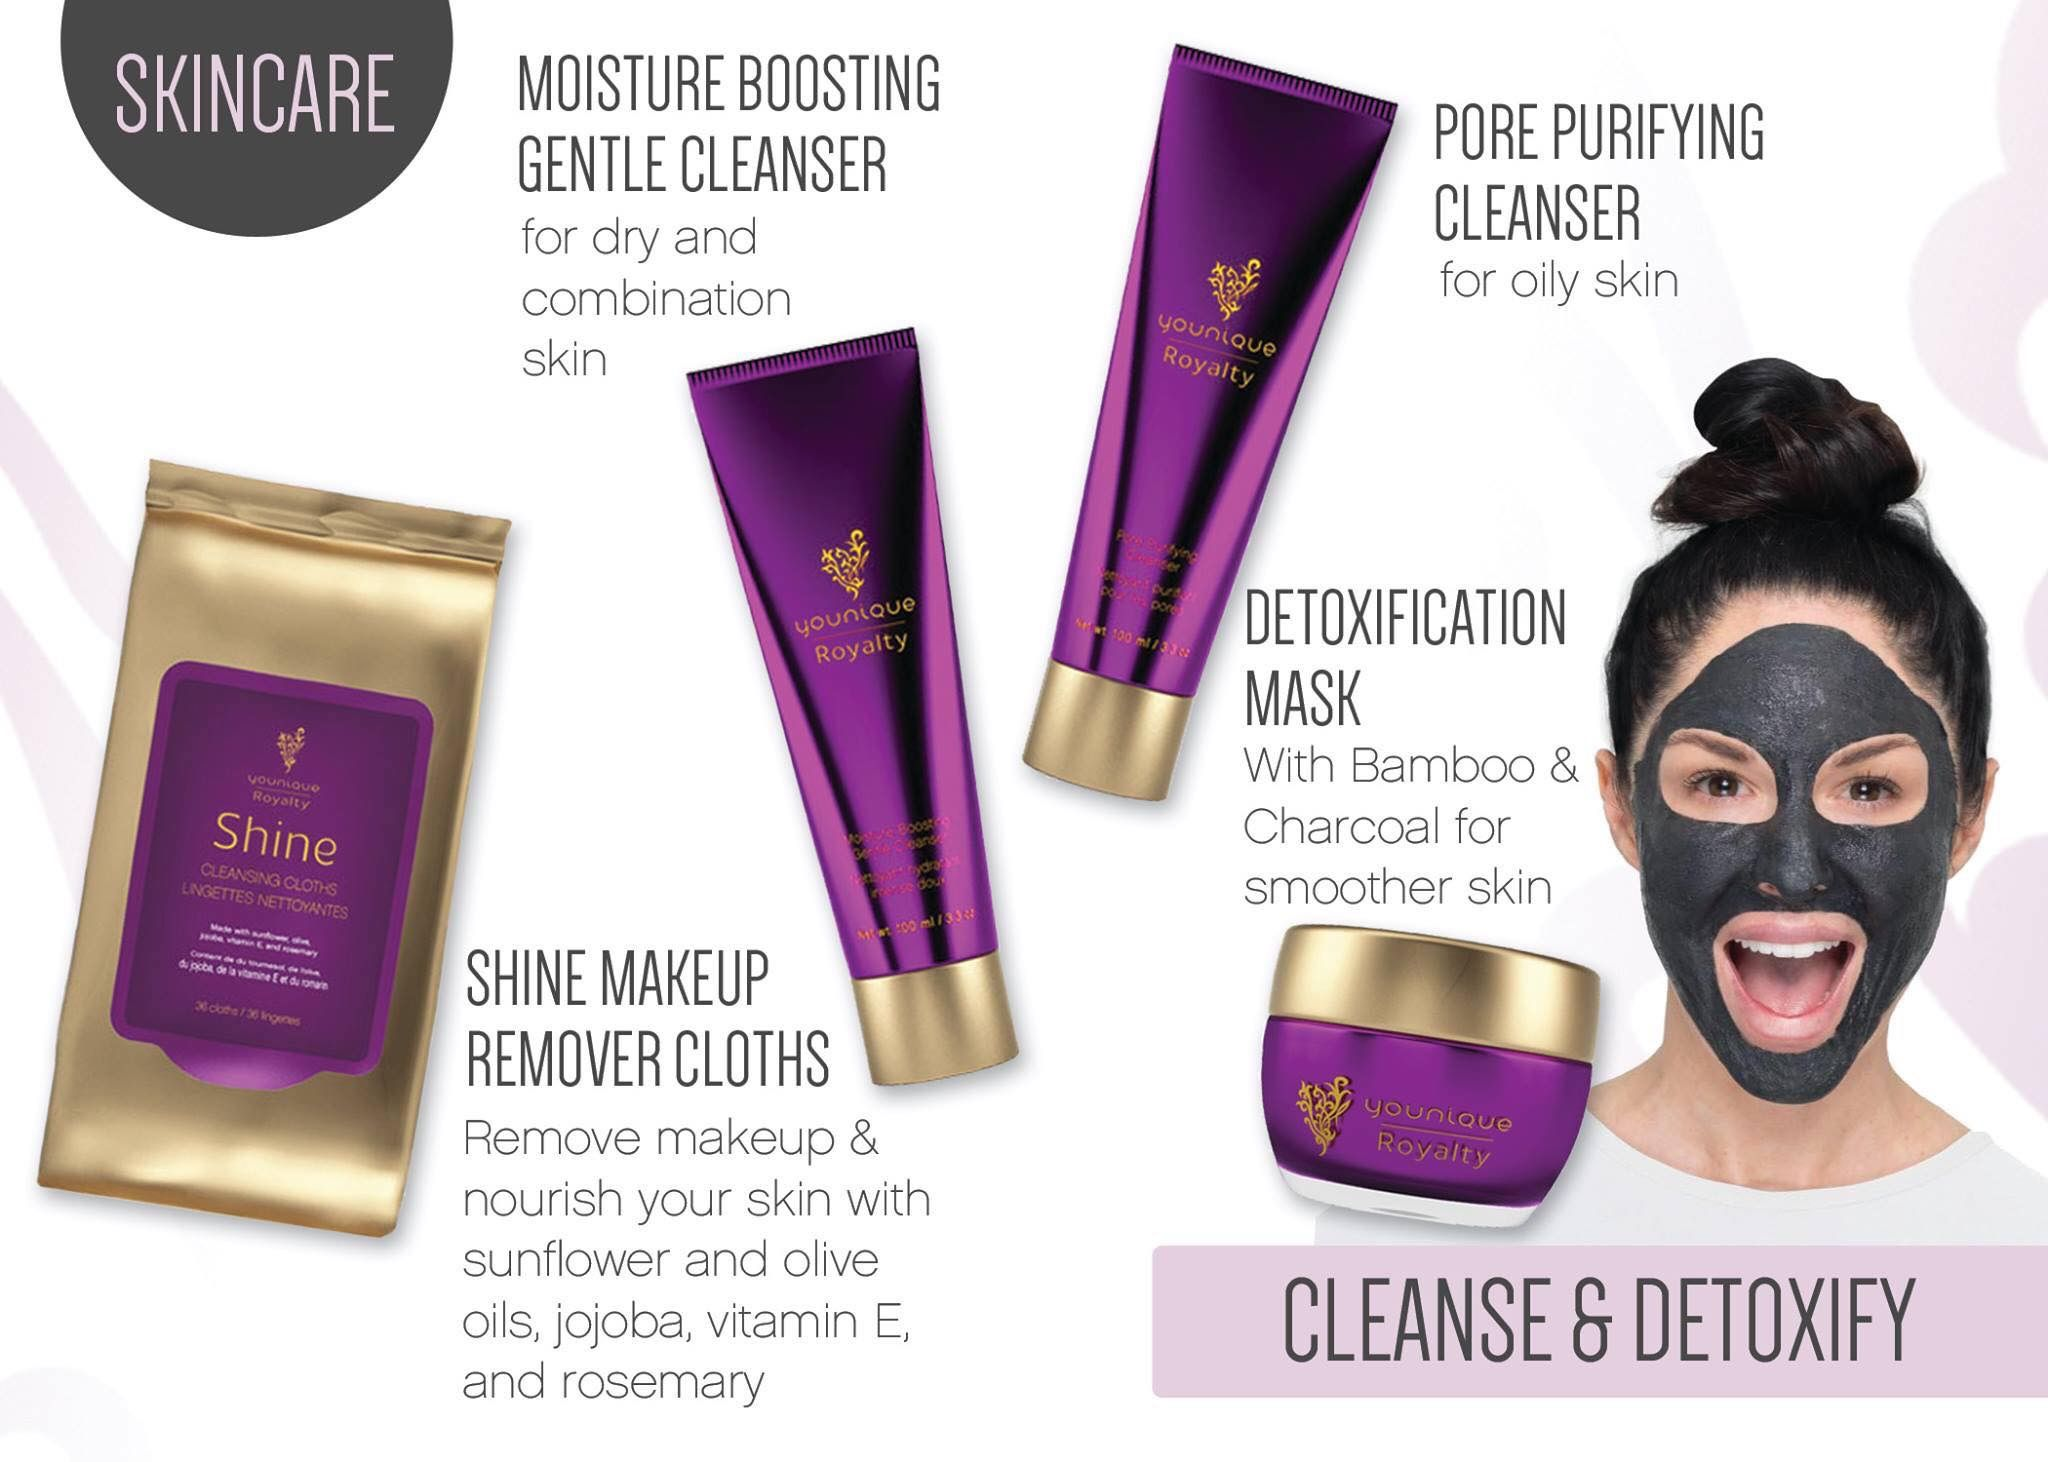 Younique royalty skin care product information, more at